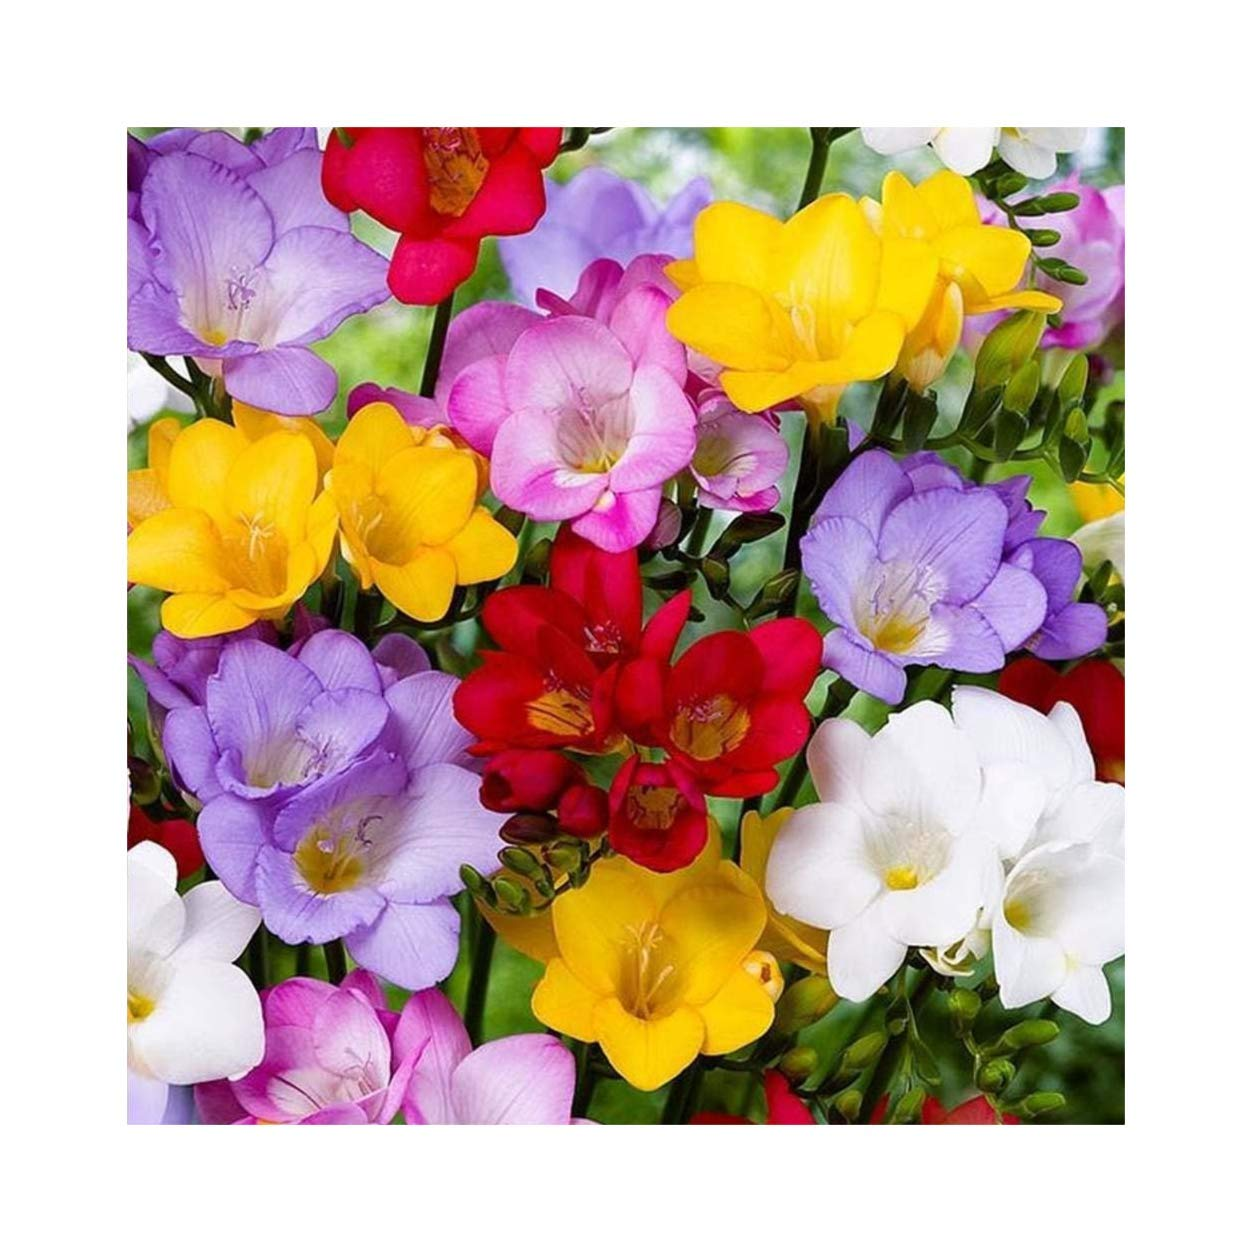 25 Freesia Mixed Single Scented Prepared Bulbs, Flower Guarantee by Plug Plants Express Limited